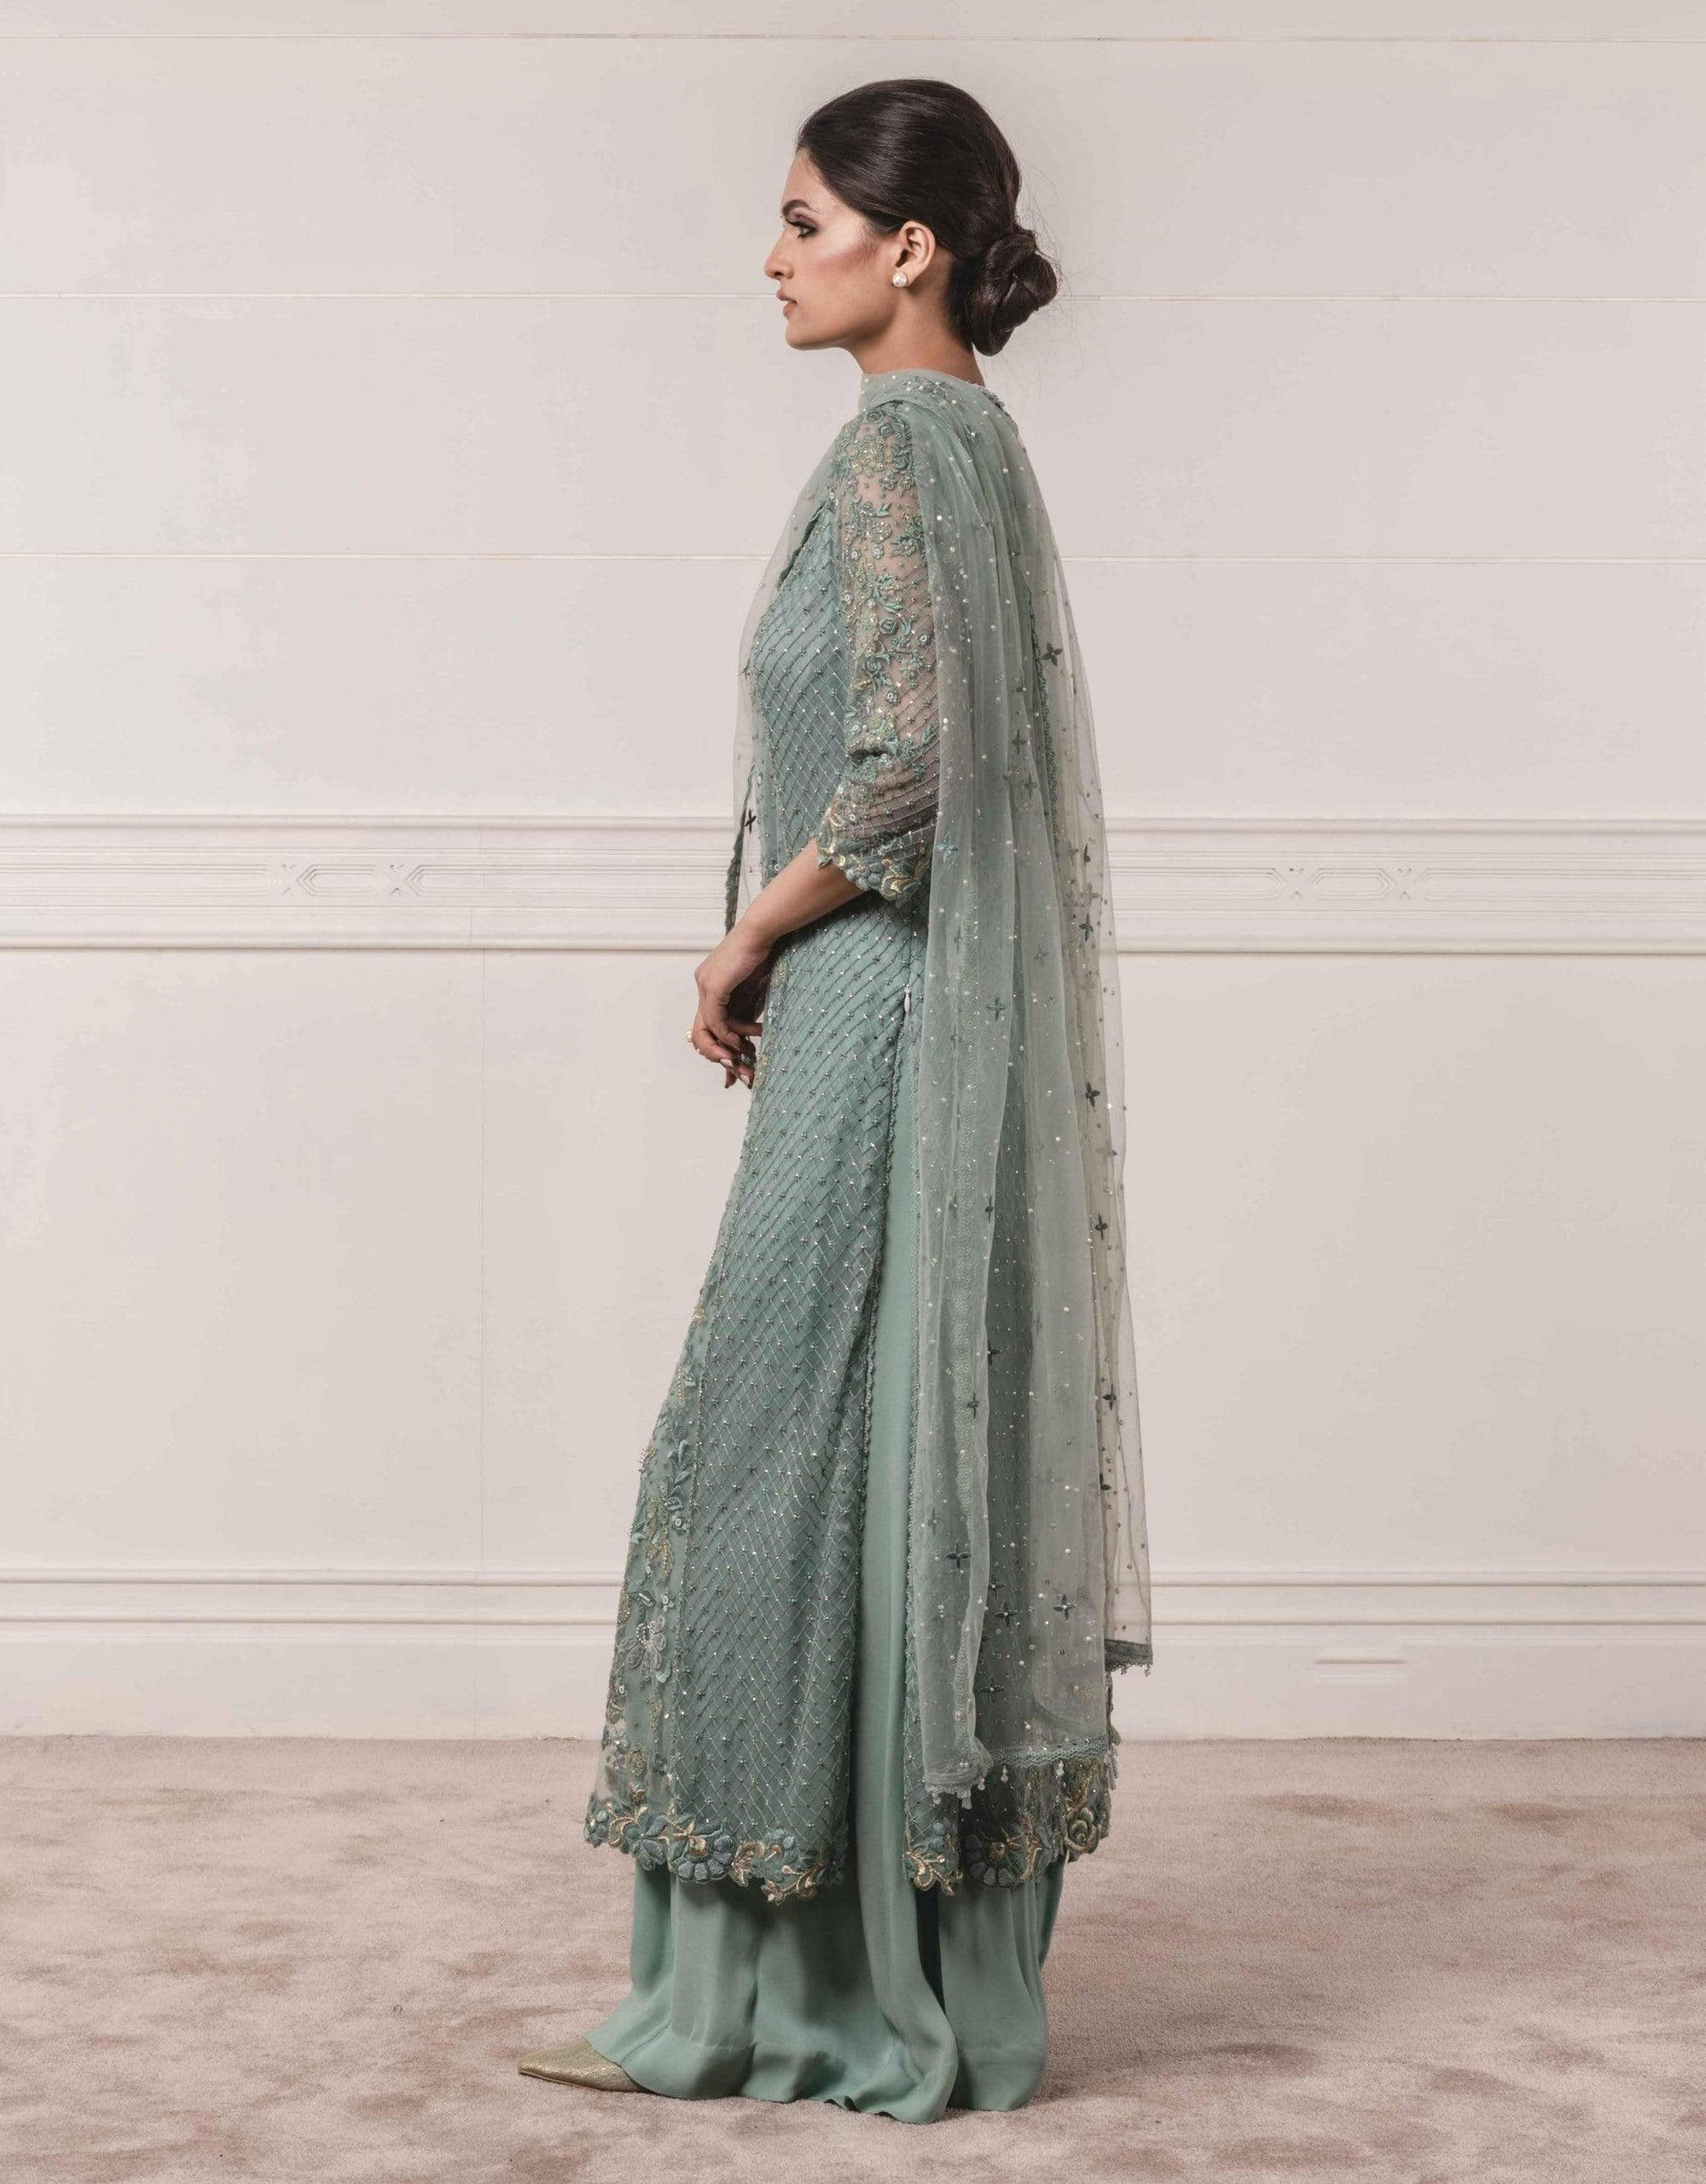 Tarun Tahiliani Shararas Tulle kurta paired with sharara and dupatta